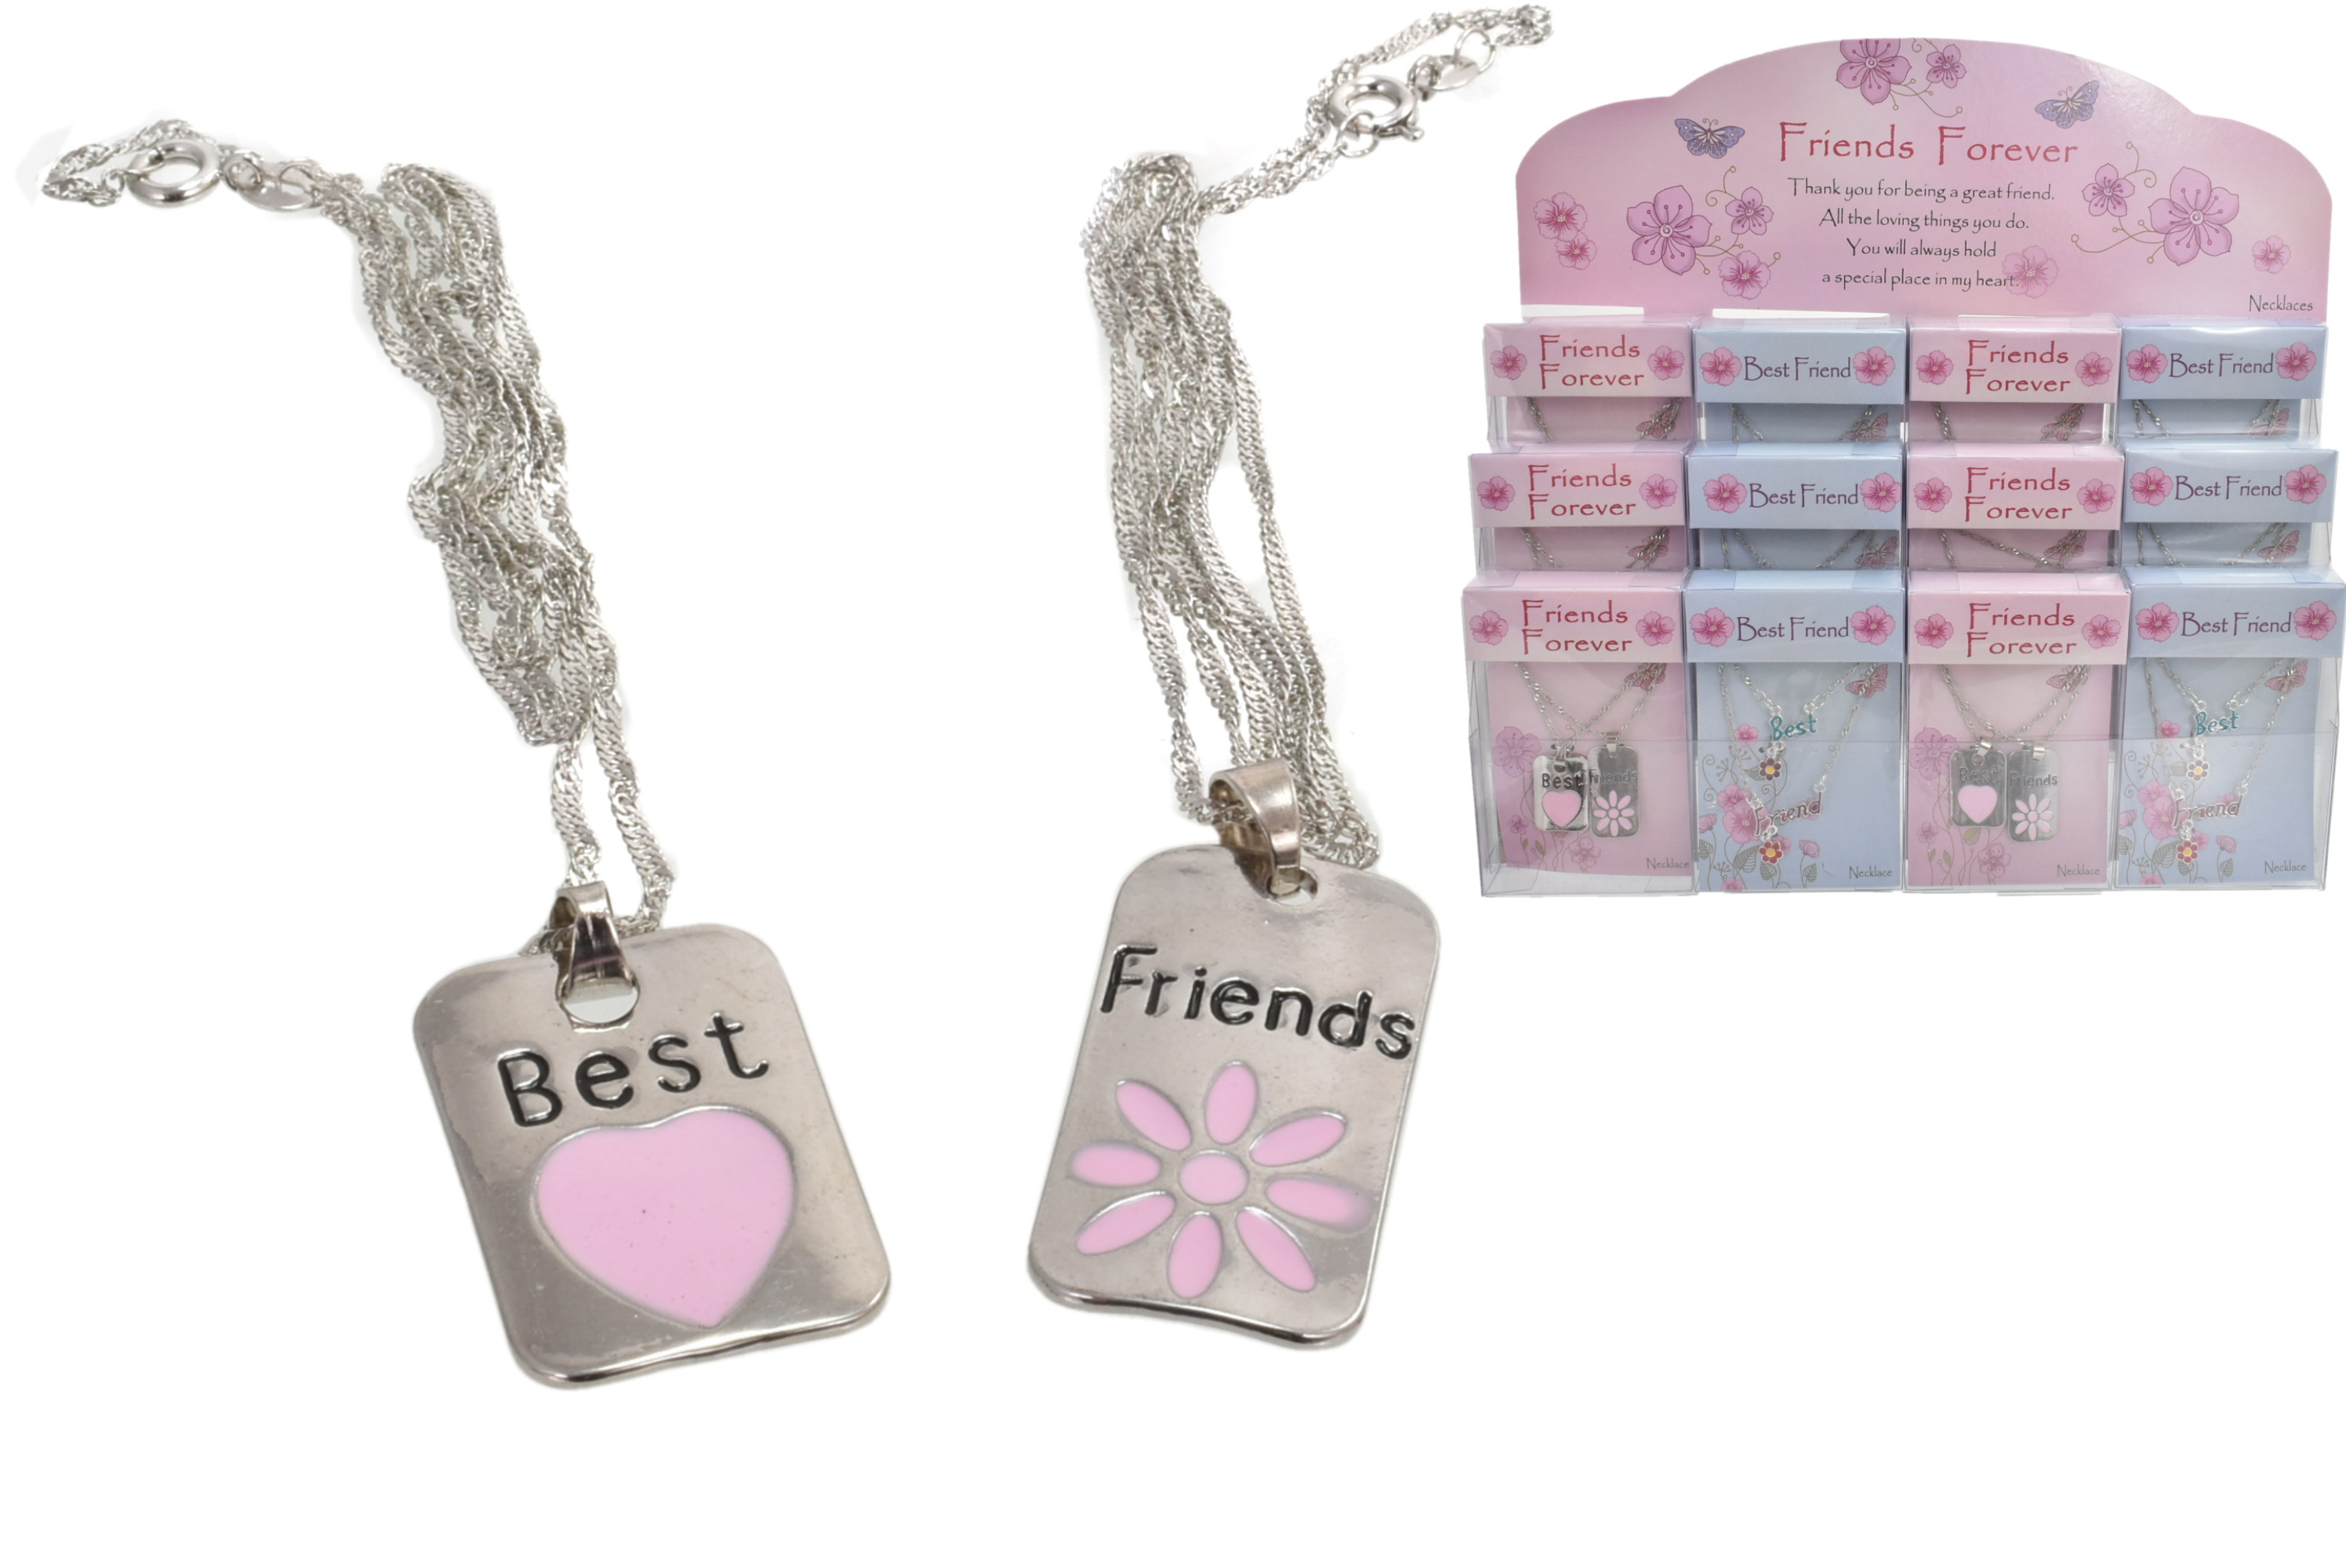 Friends Forever Double Necklace In Acetate Box In Dbx